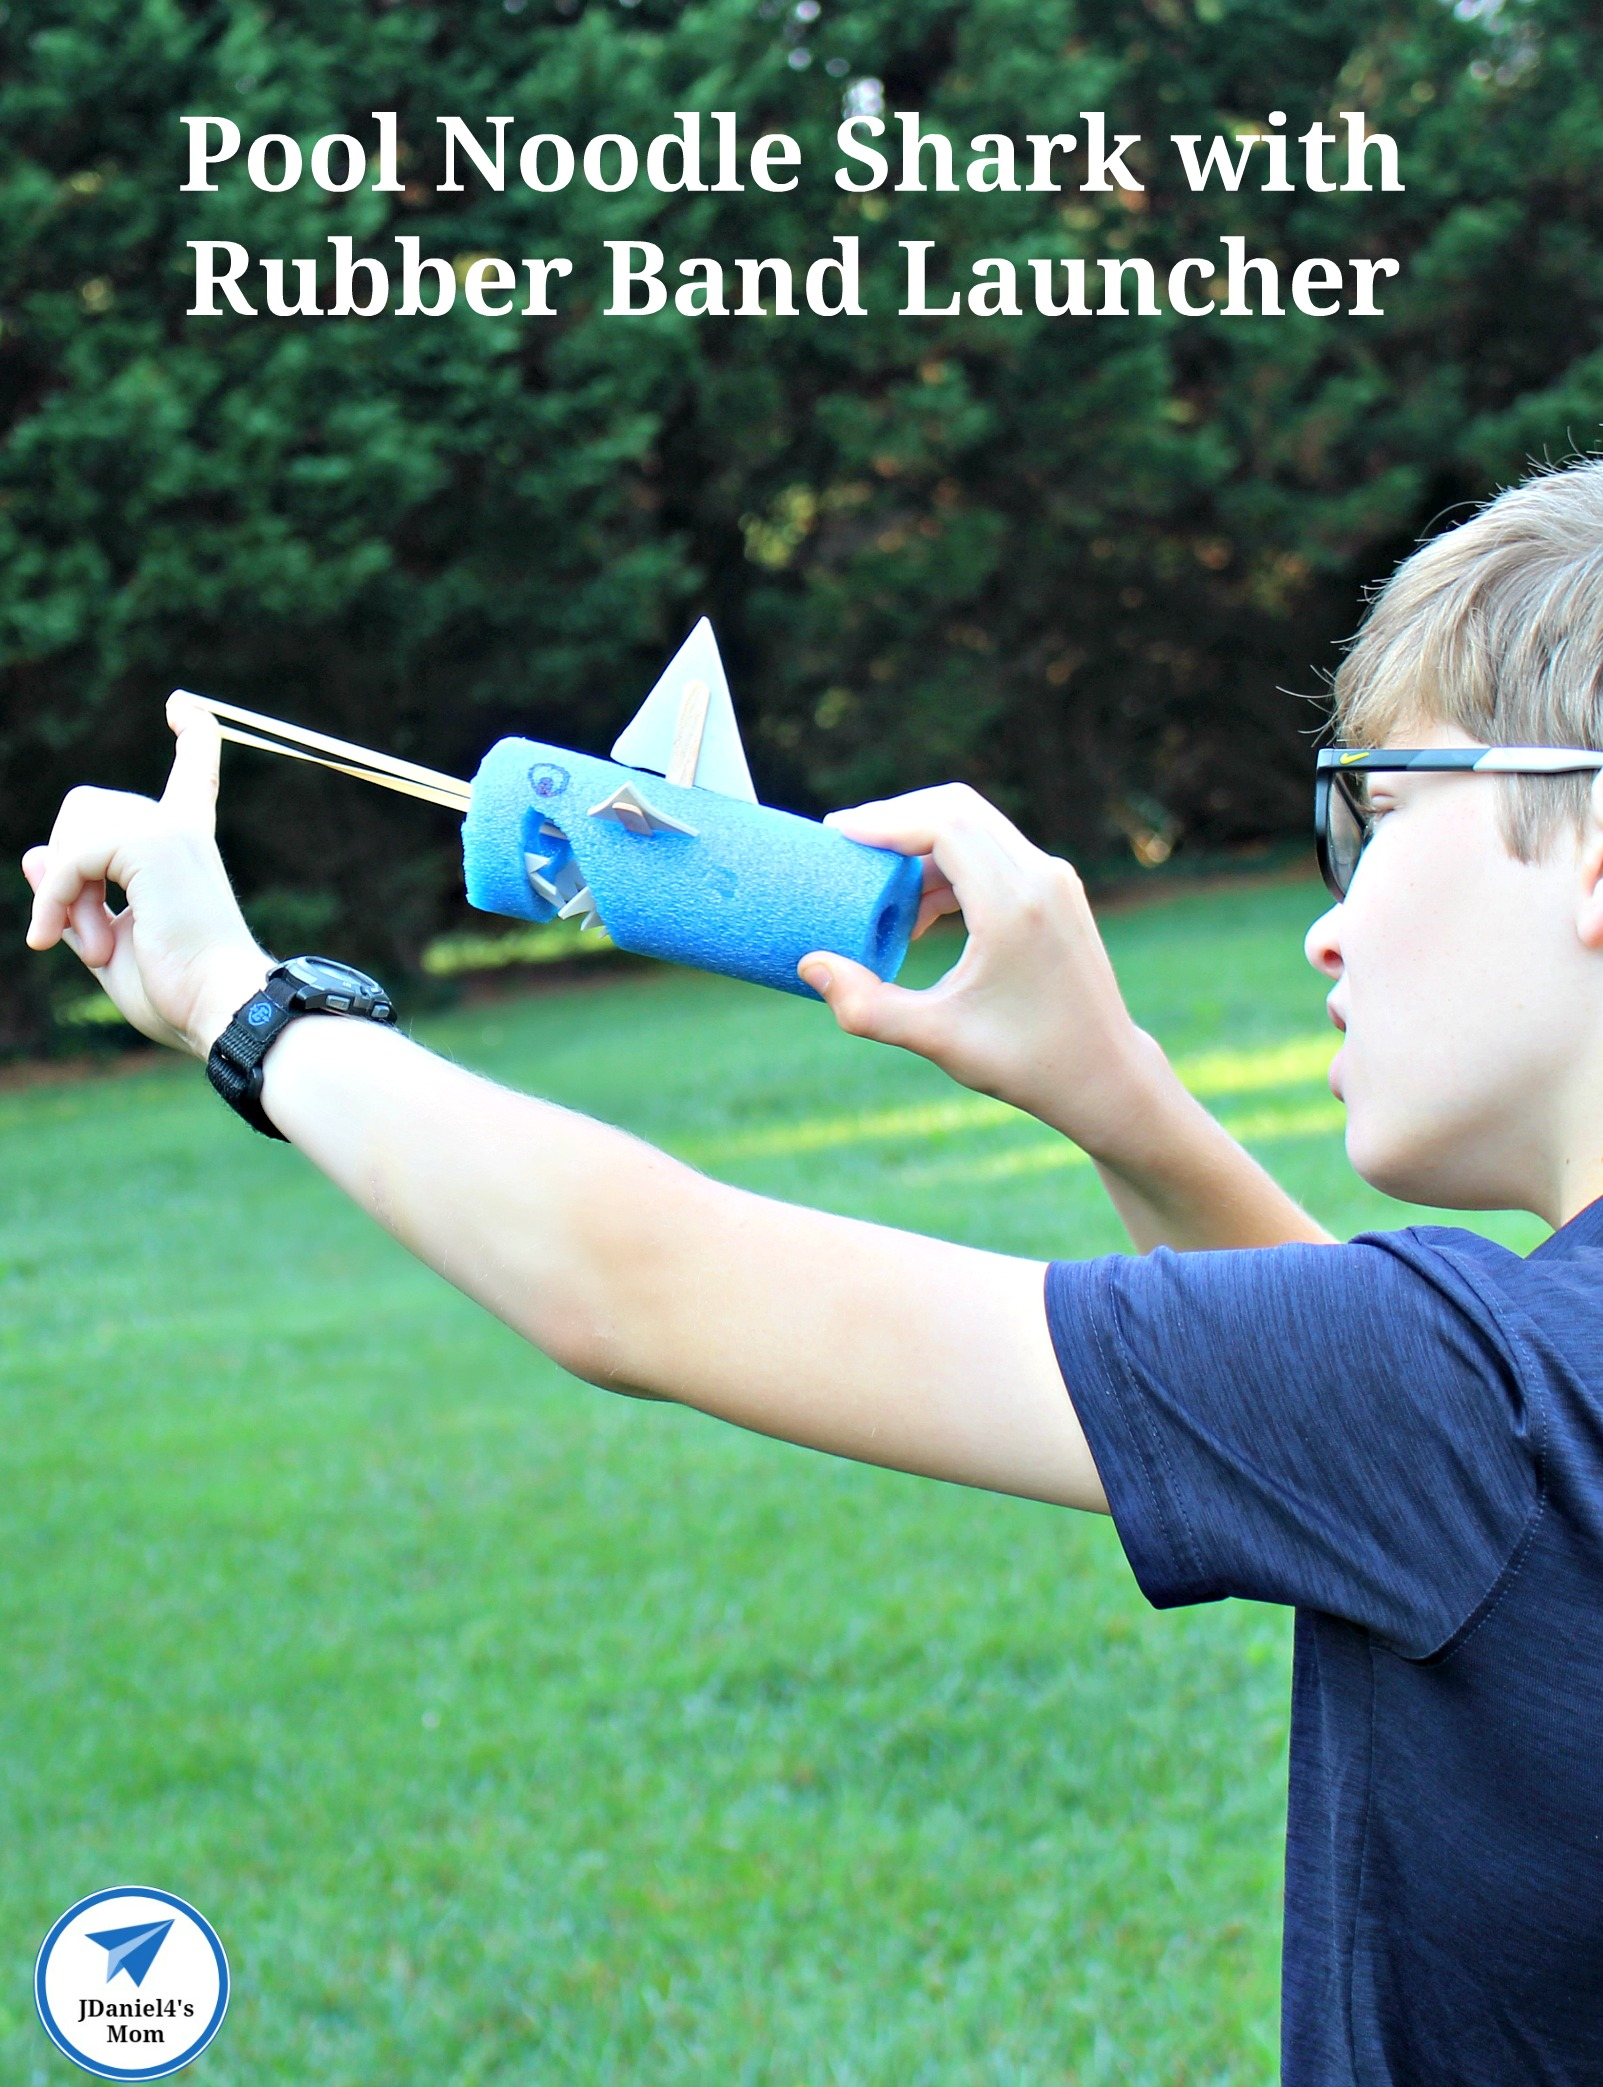 Pool Noodle Shark with Rubber Band Launcher - Your children will have fun creating their on pool noodle shark with rubber band launcher. #jdaniel4smom #poolnoodle #shark #launcher #STEM #sharkweek